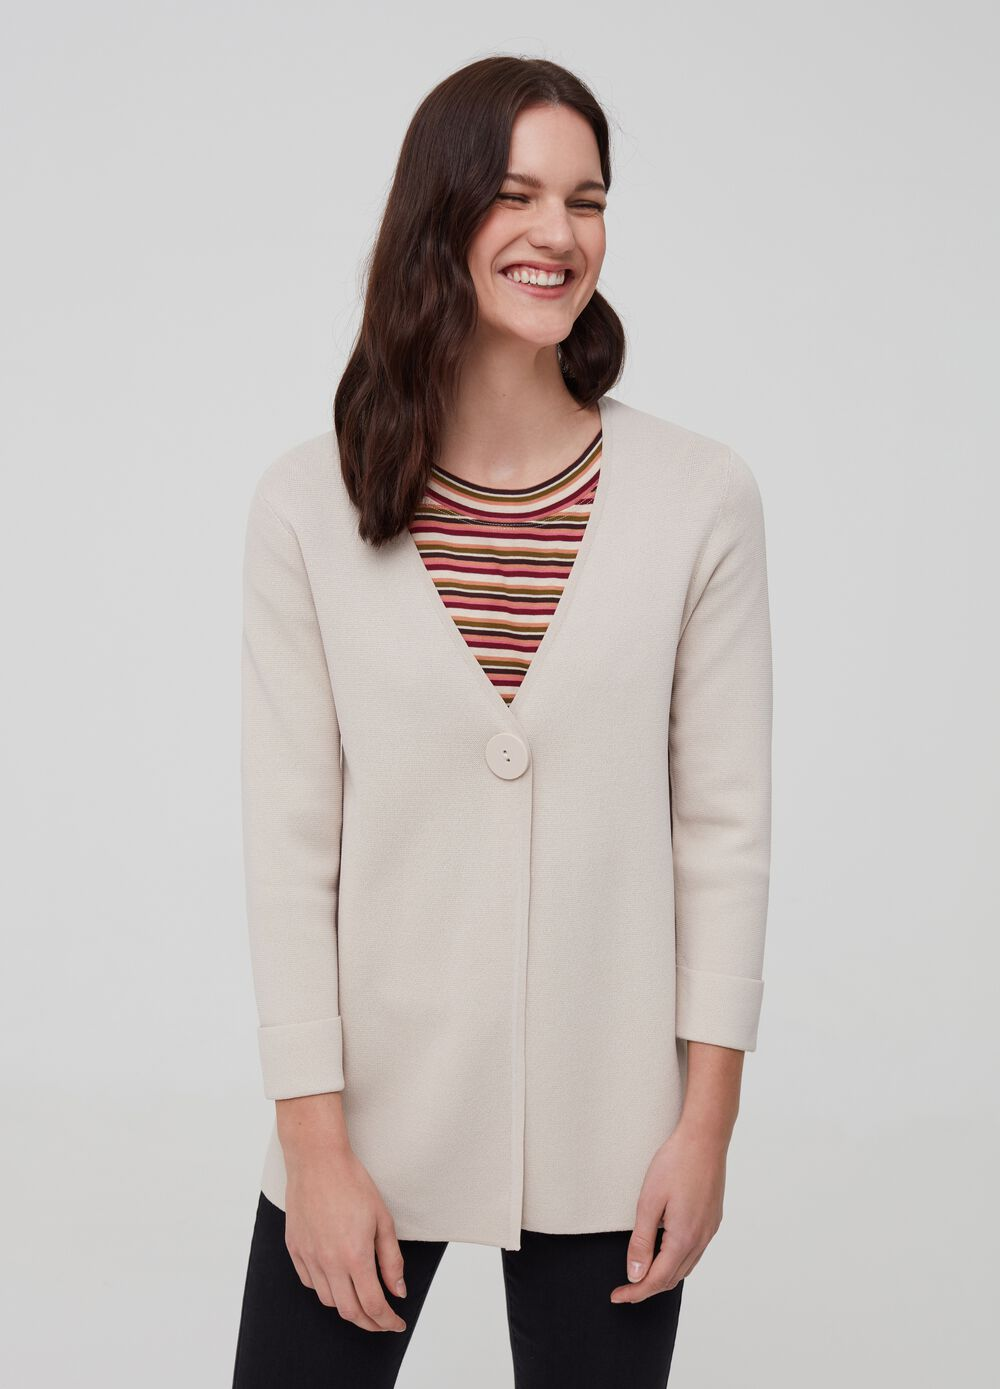 Knit cardigan with button